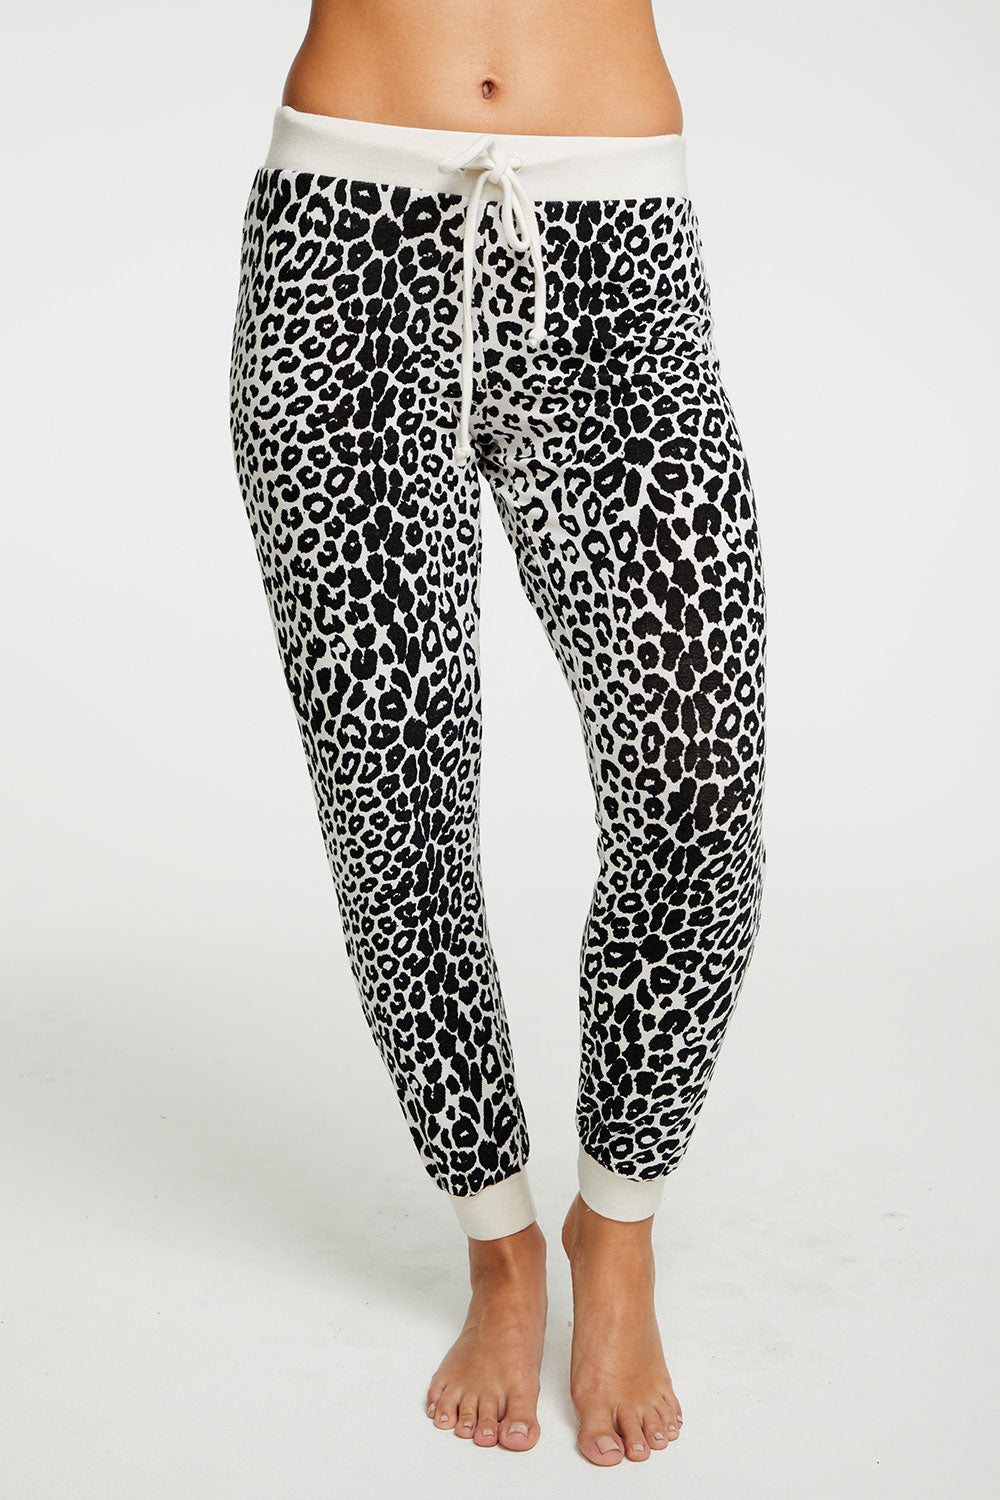 Animal Print Sweatpant WOMENS chaserbrand4.myshopify.com